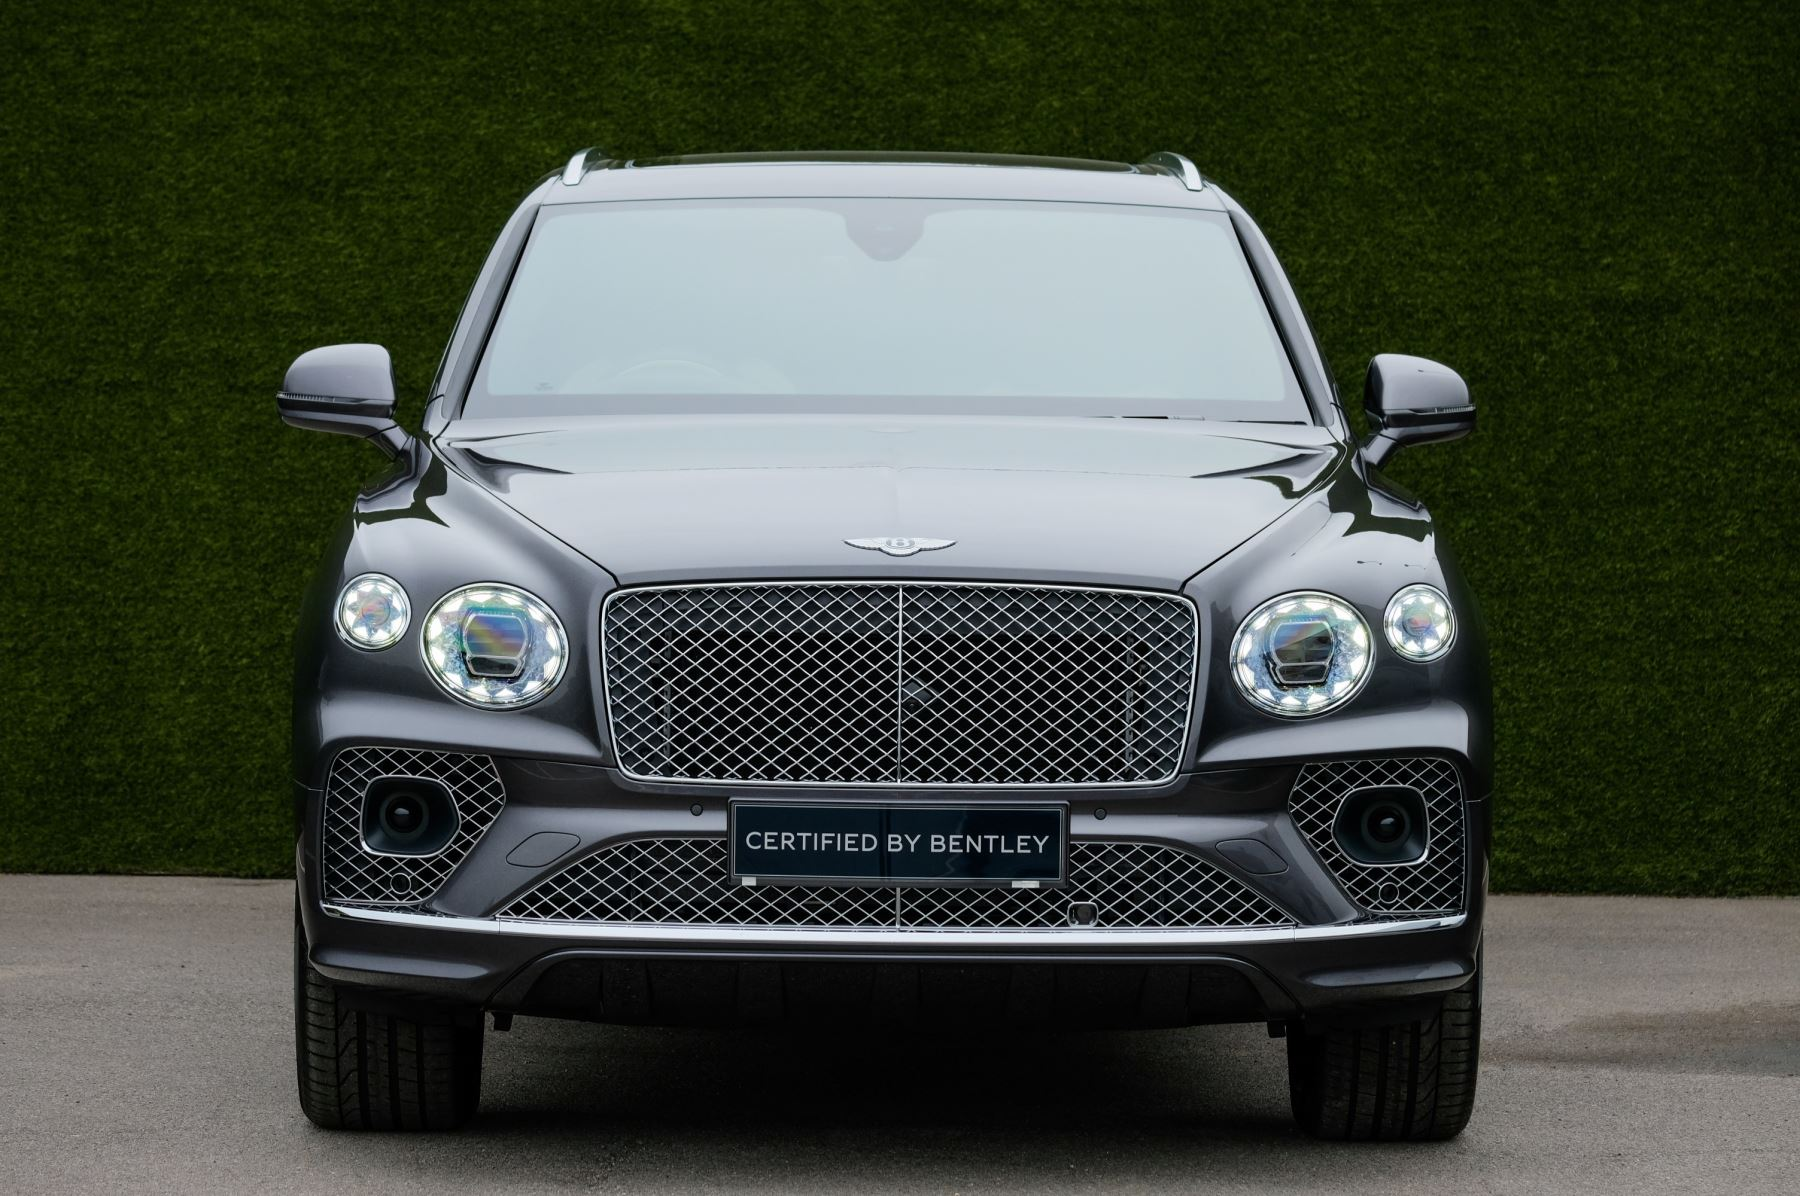 Bentley Bentayga 4.0 V8 5dr [4 Seat] - First Edition - All Terrain Specification image 2